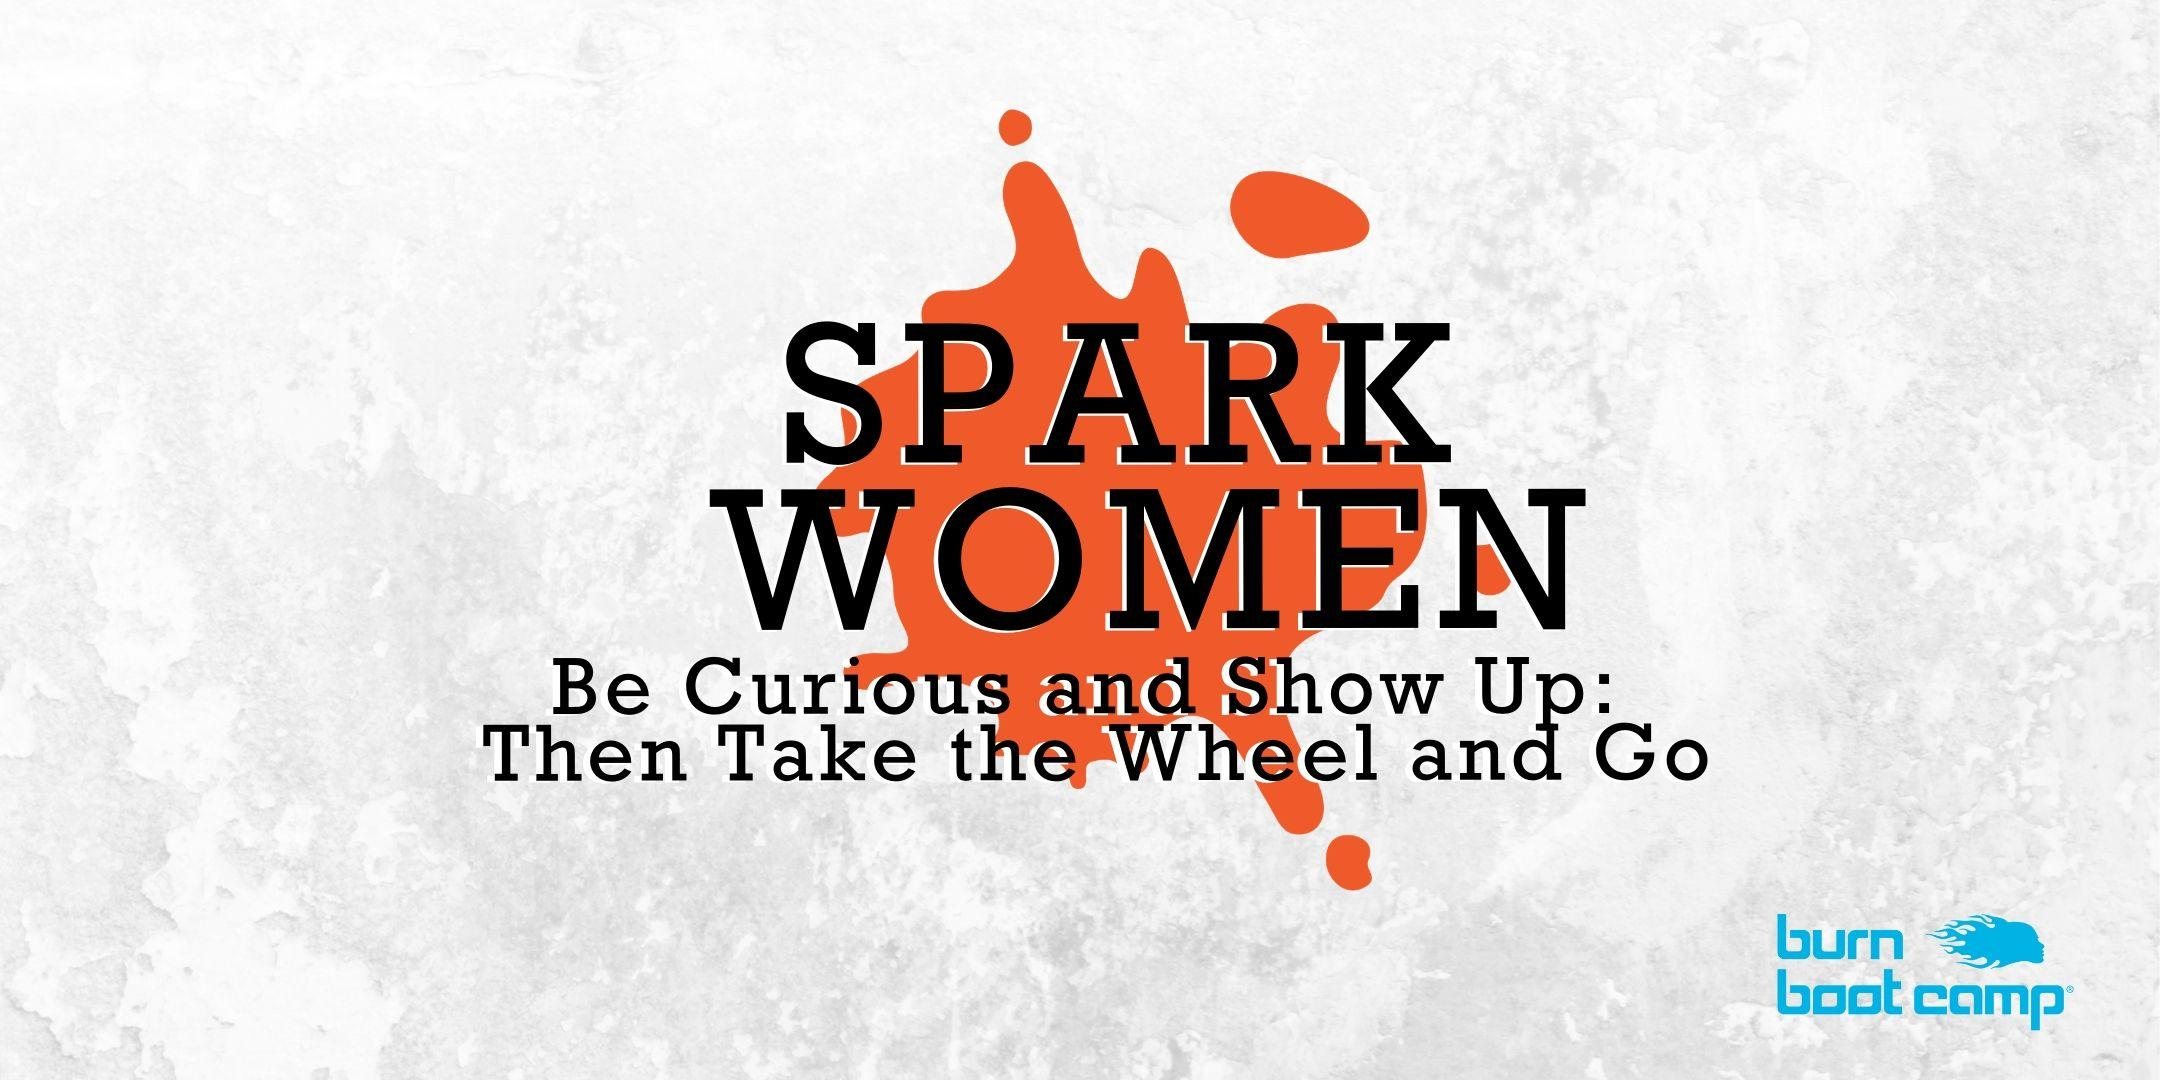 Spark Women: Be Curious and Show Up - Then Take the Wheel and Go 1